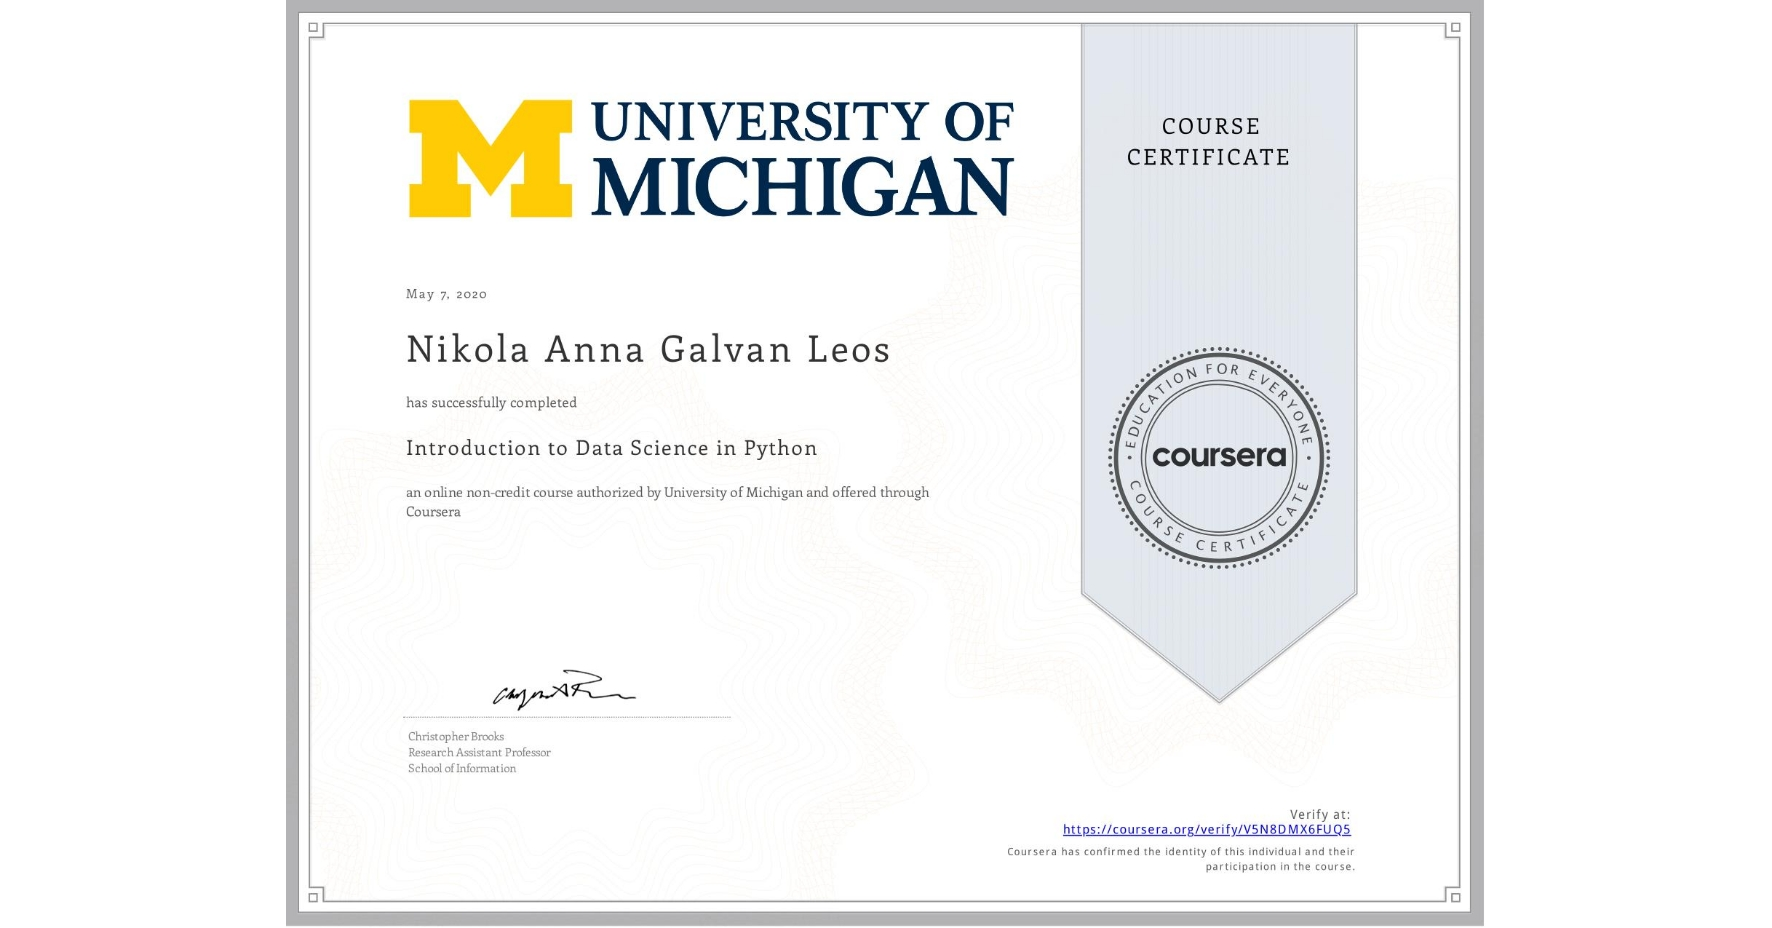 View certificate for Nikola Anna Galvan Leos, Introduction to Data Science in Python, an online non-credit course authorized by University of Michigan and offered through Coursera